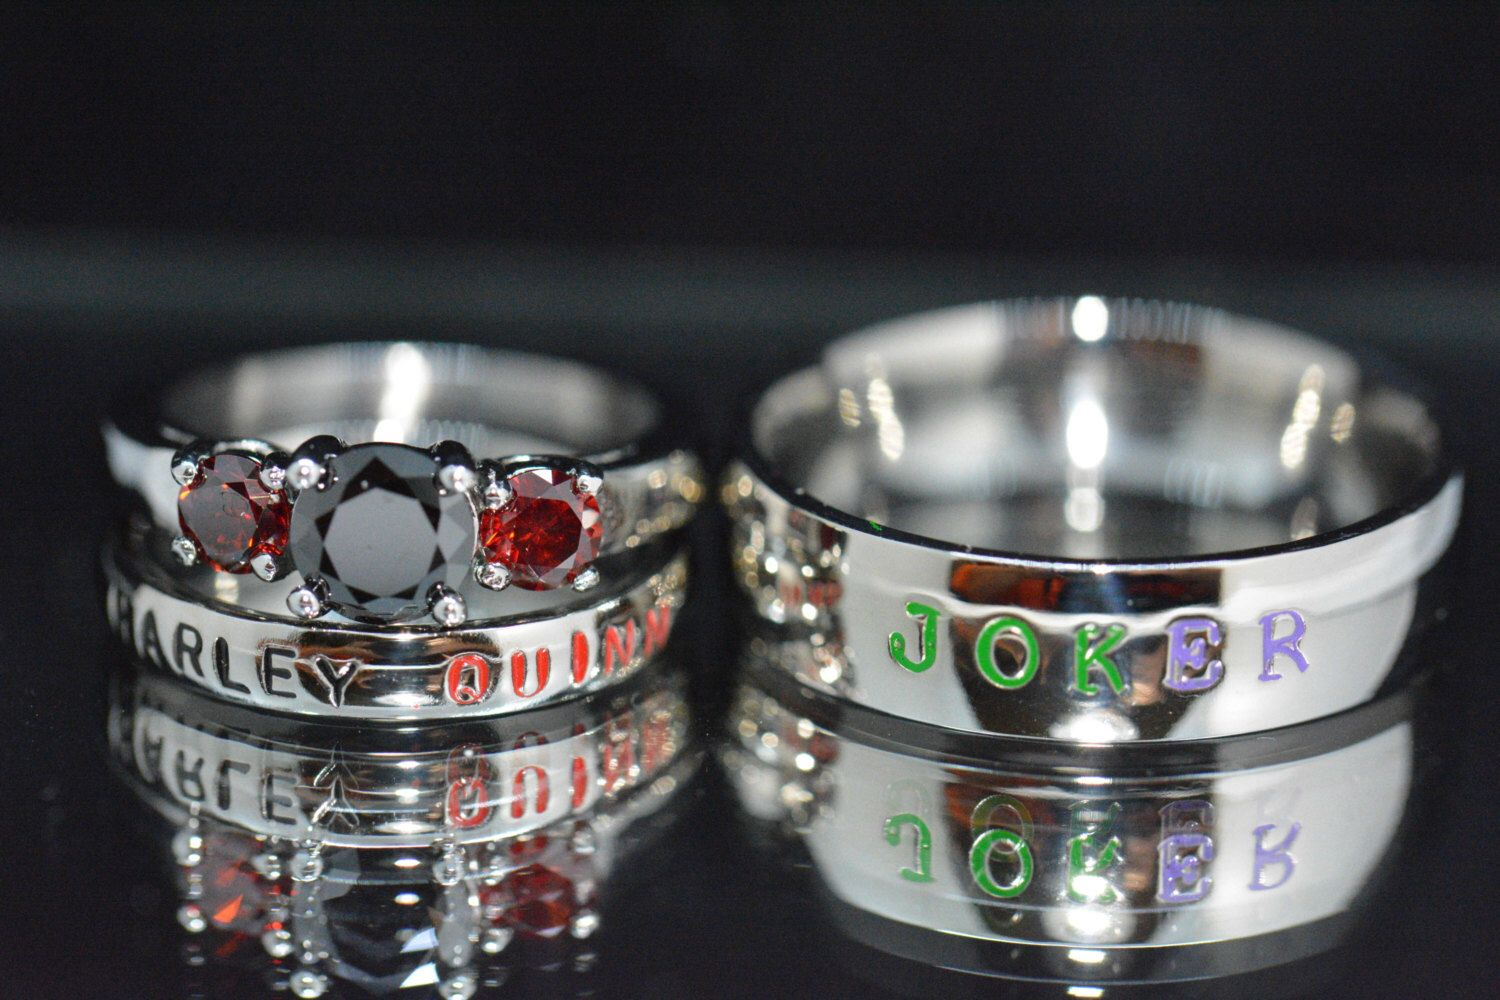 Harley and Joker Rings Black Diamond CZ and Garnet CZ Complete 3